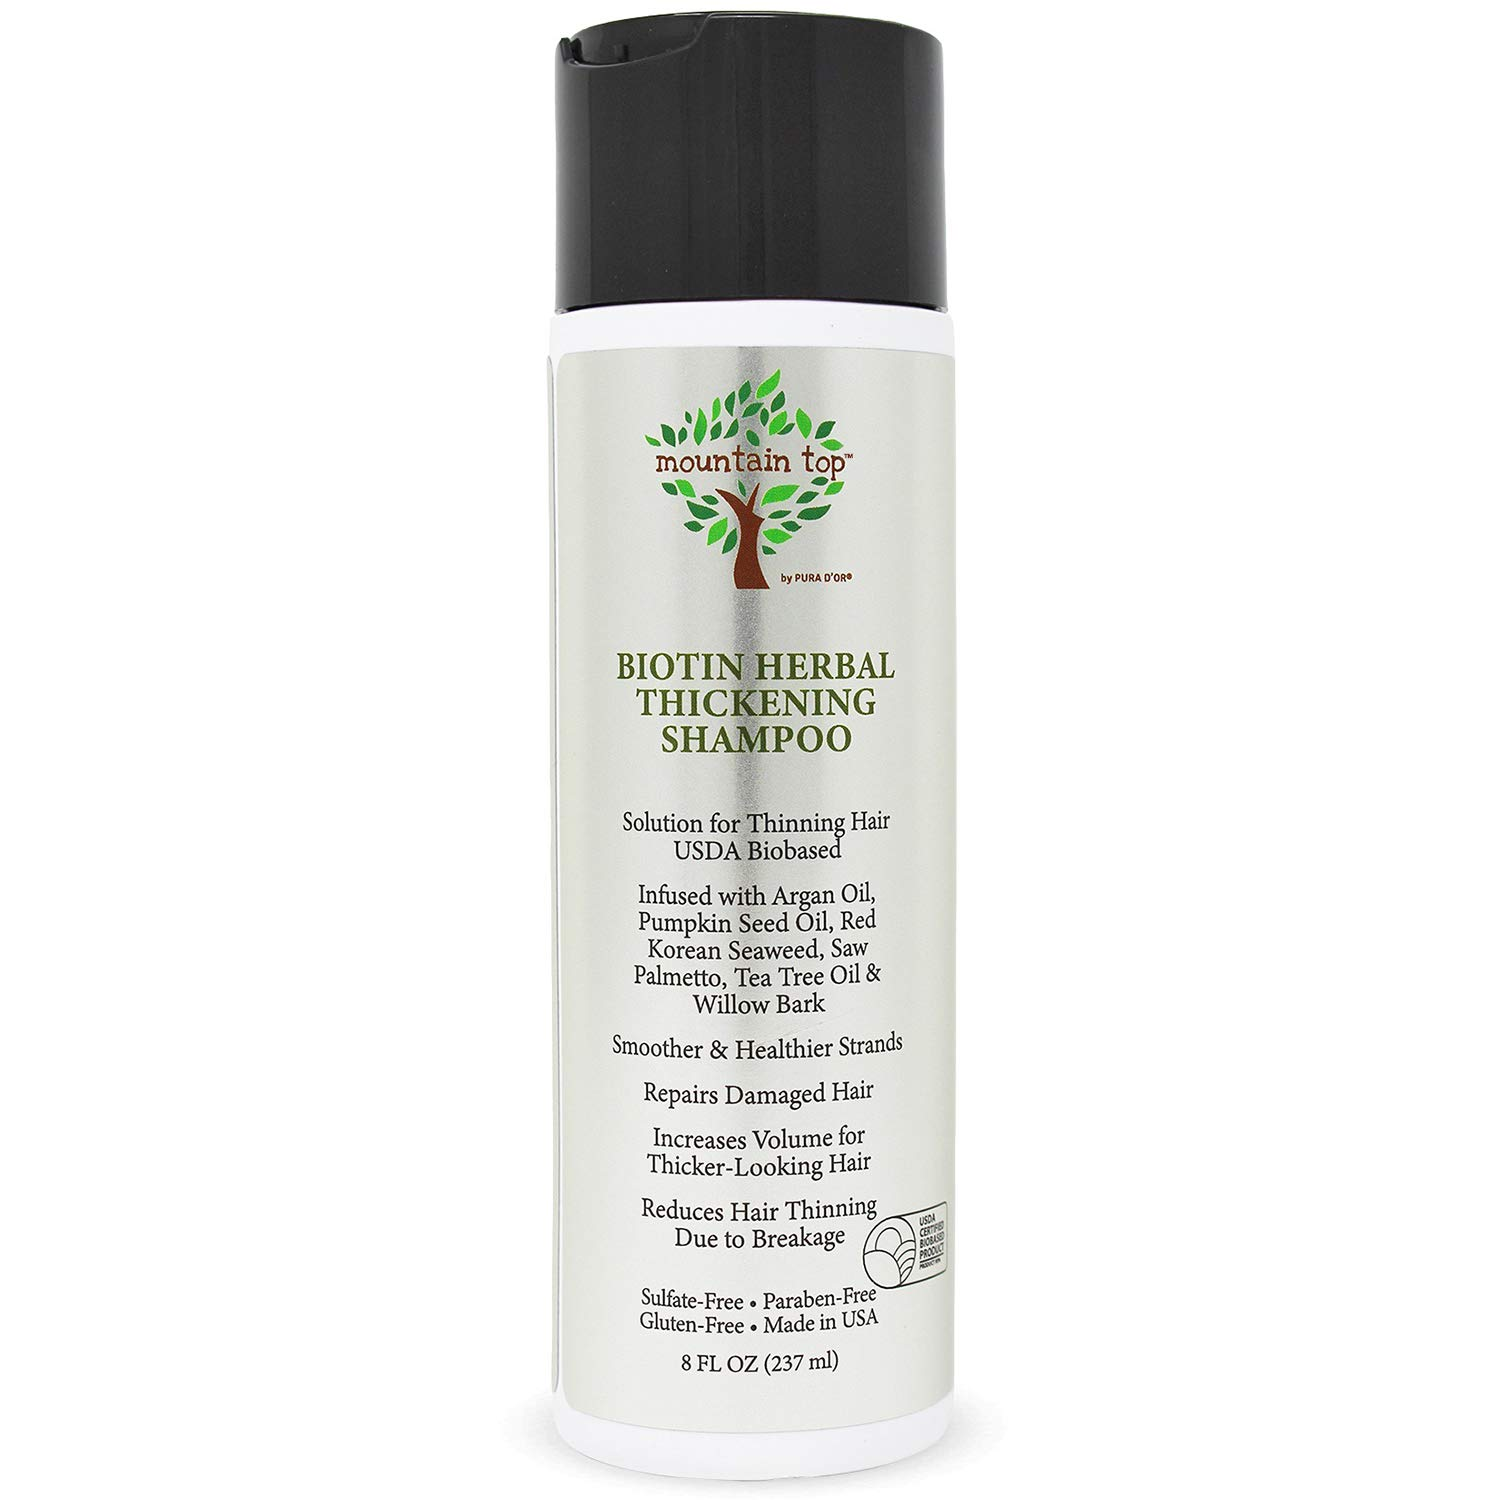 MOUNTAIN TOP Biotin Herbal Thickening Shampoo (8oz / 273ml) with Argan Oil, Pumpkin Seed Oil, Red Korean Seaweed, Saw Palmetto, Tea Tree Oil & Willow Bark, Sulfate Free, All Hair Types, Men and Women